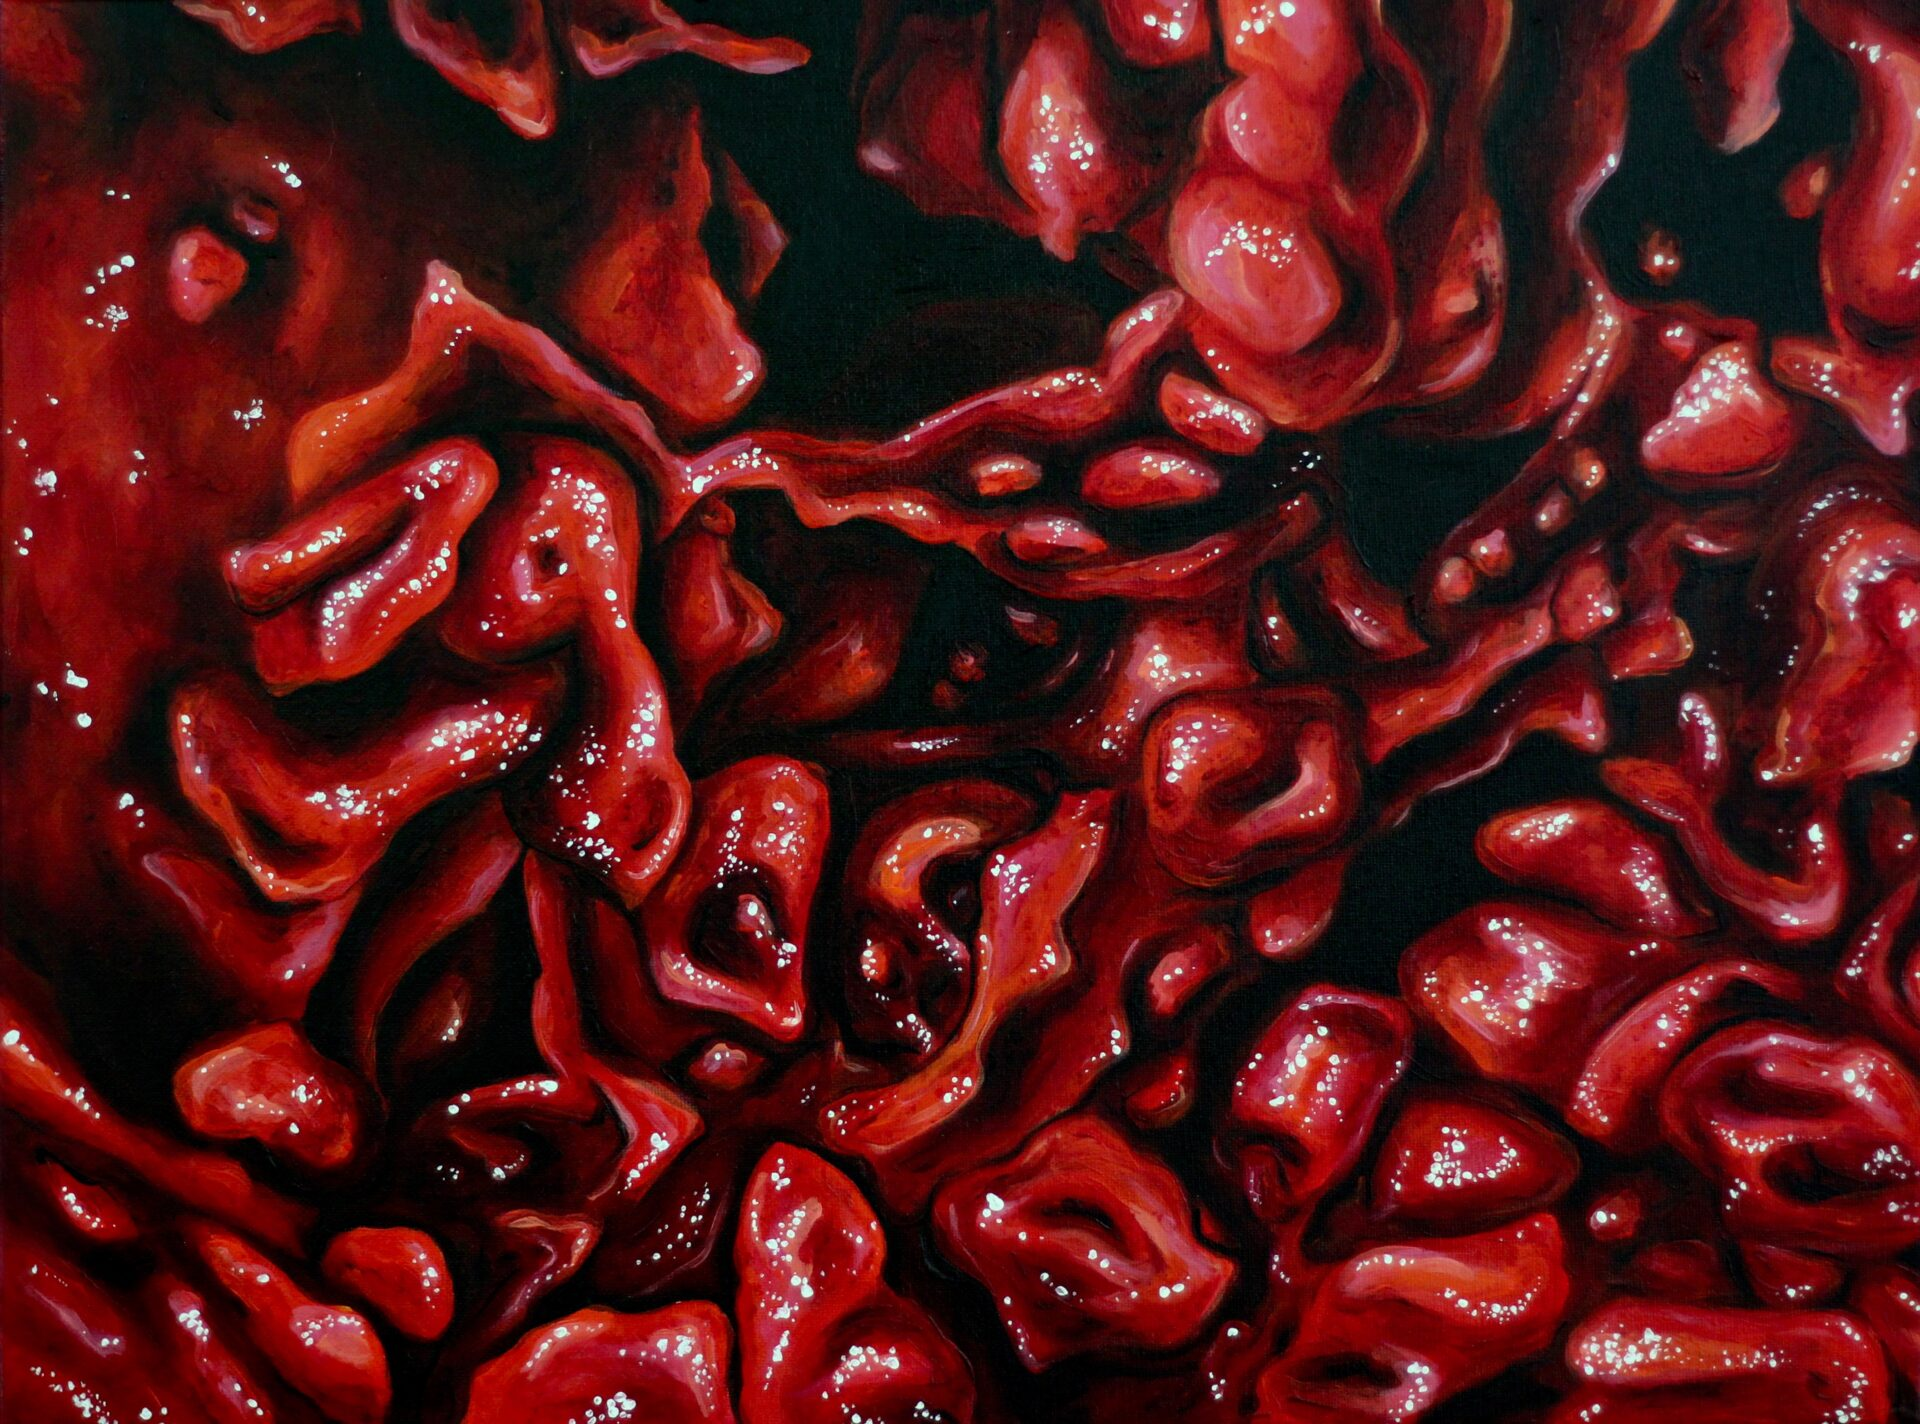 "Angela Faustina, Cactus Pear II, 2013. Oil on canvas, 24"" by 20""."